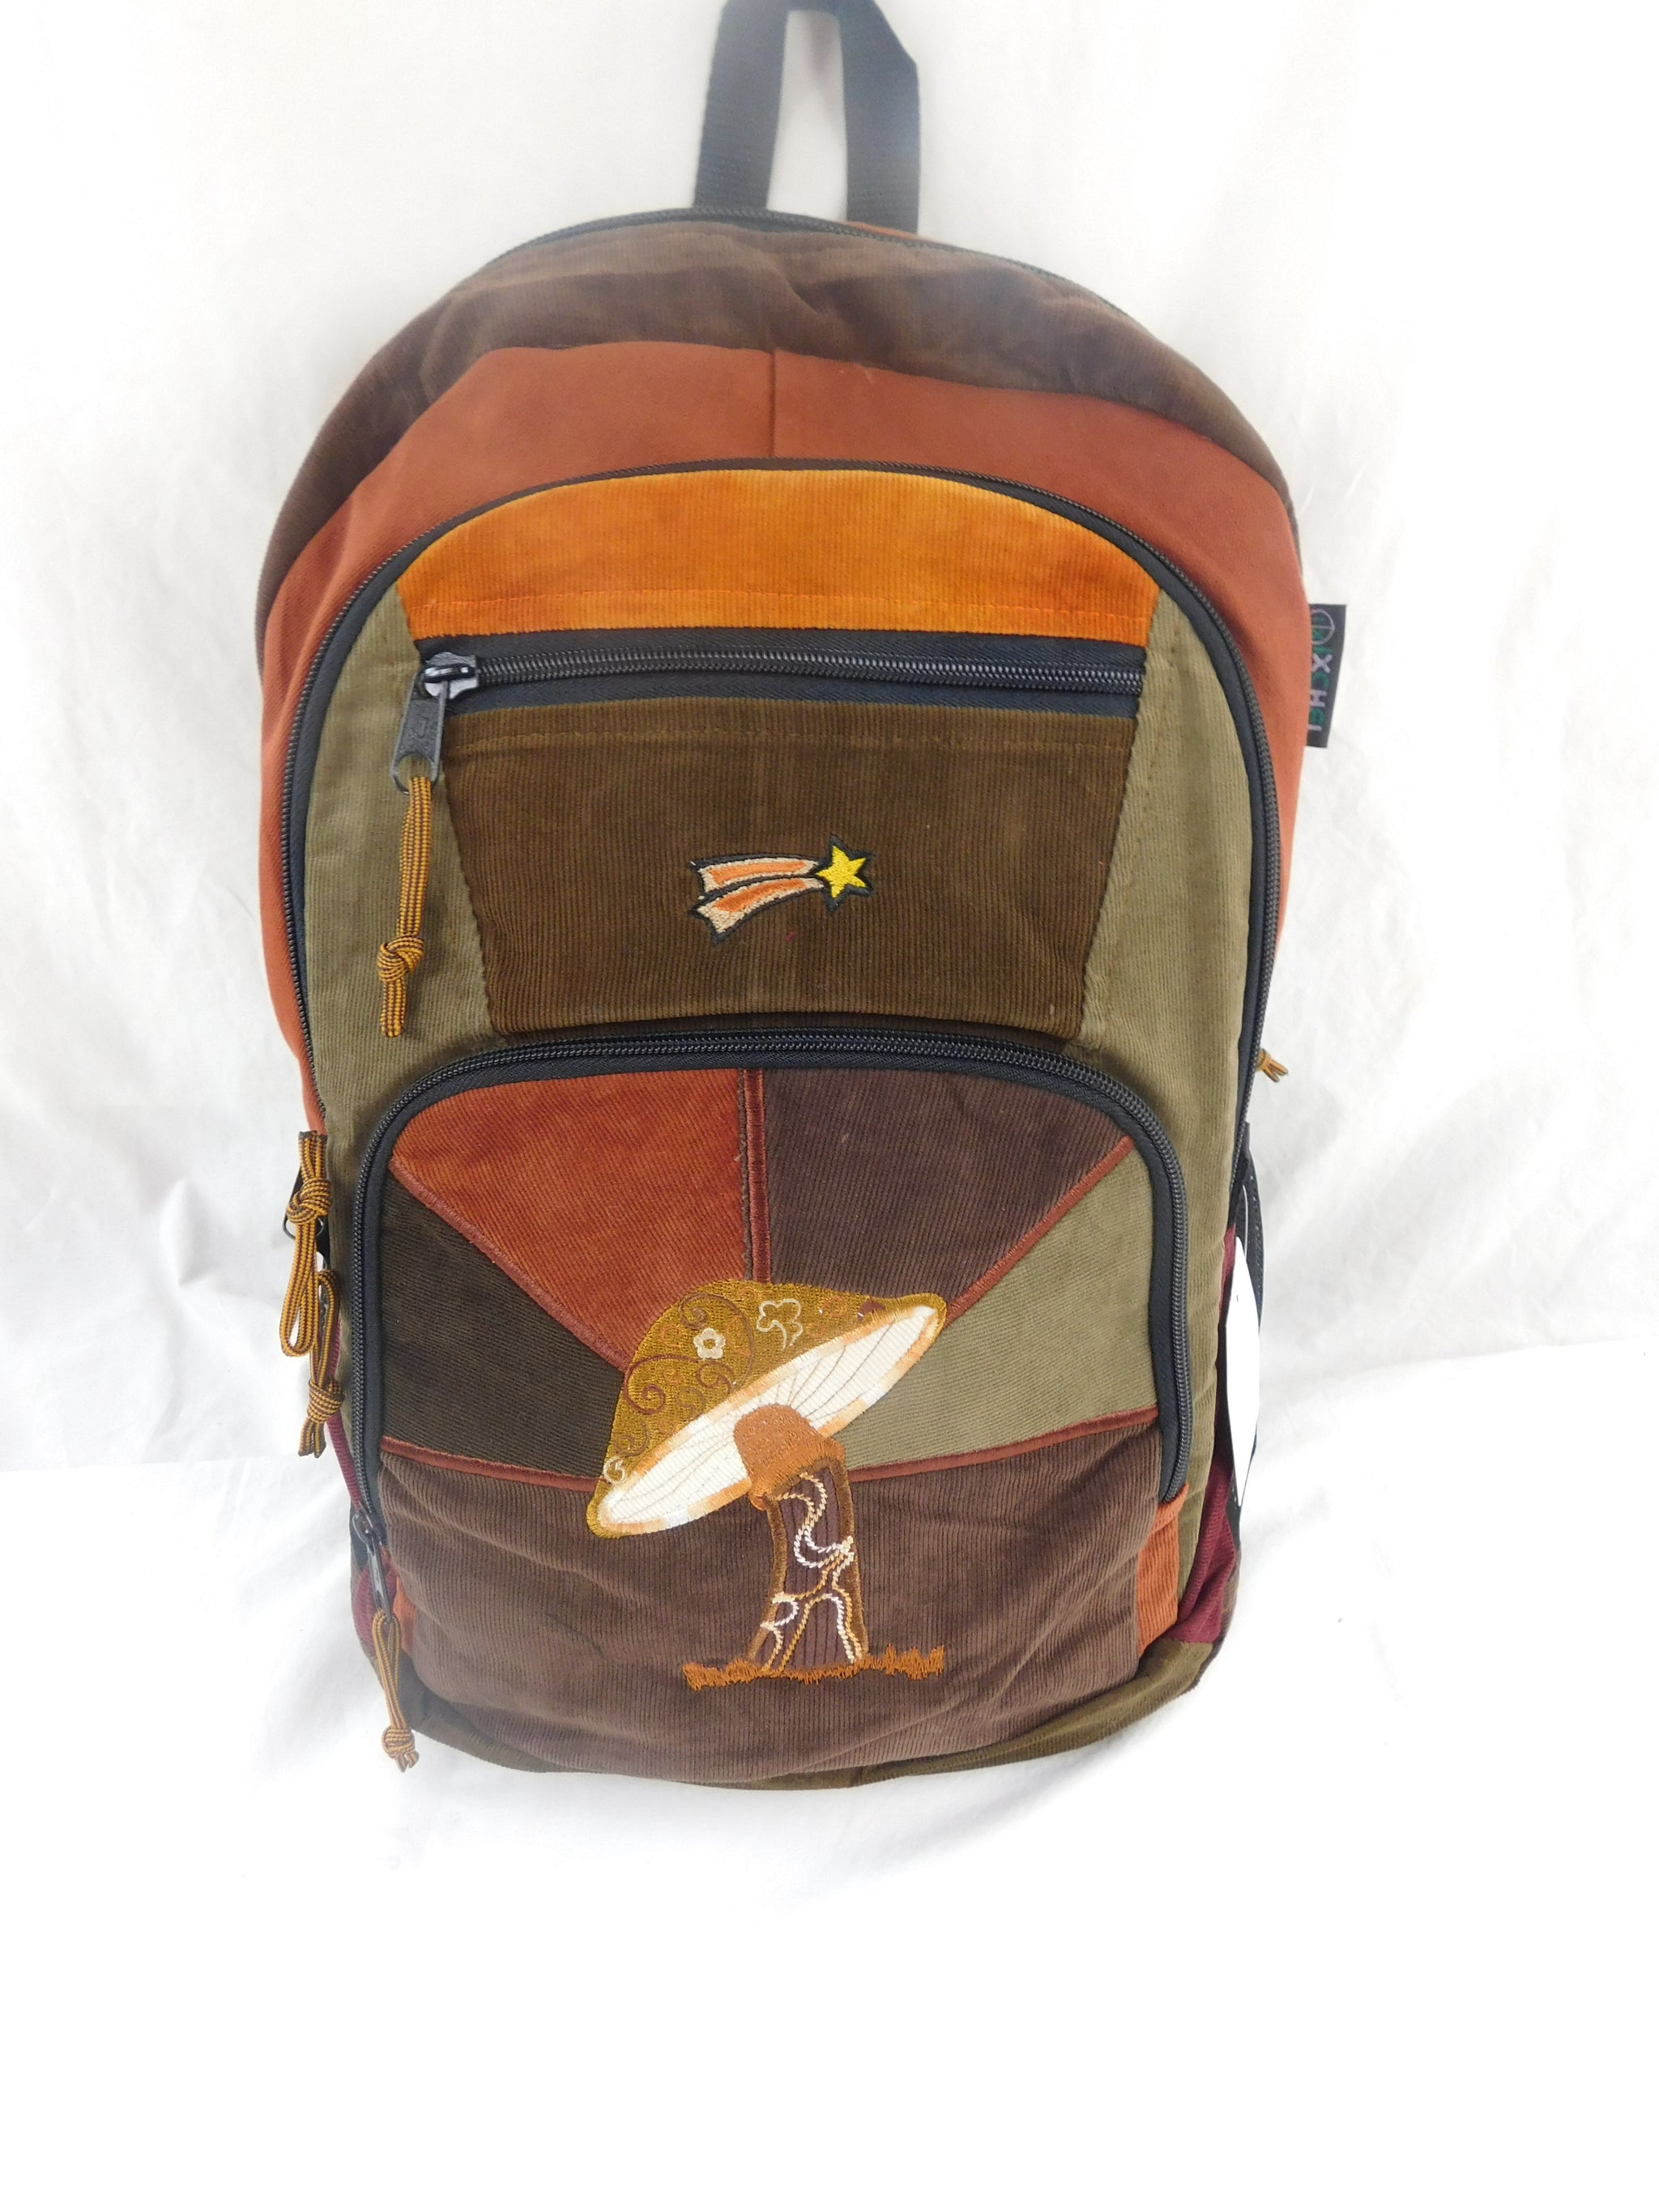 Patchwork Corduroy Backpack with Mushroom